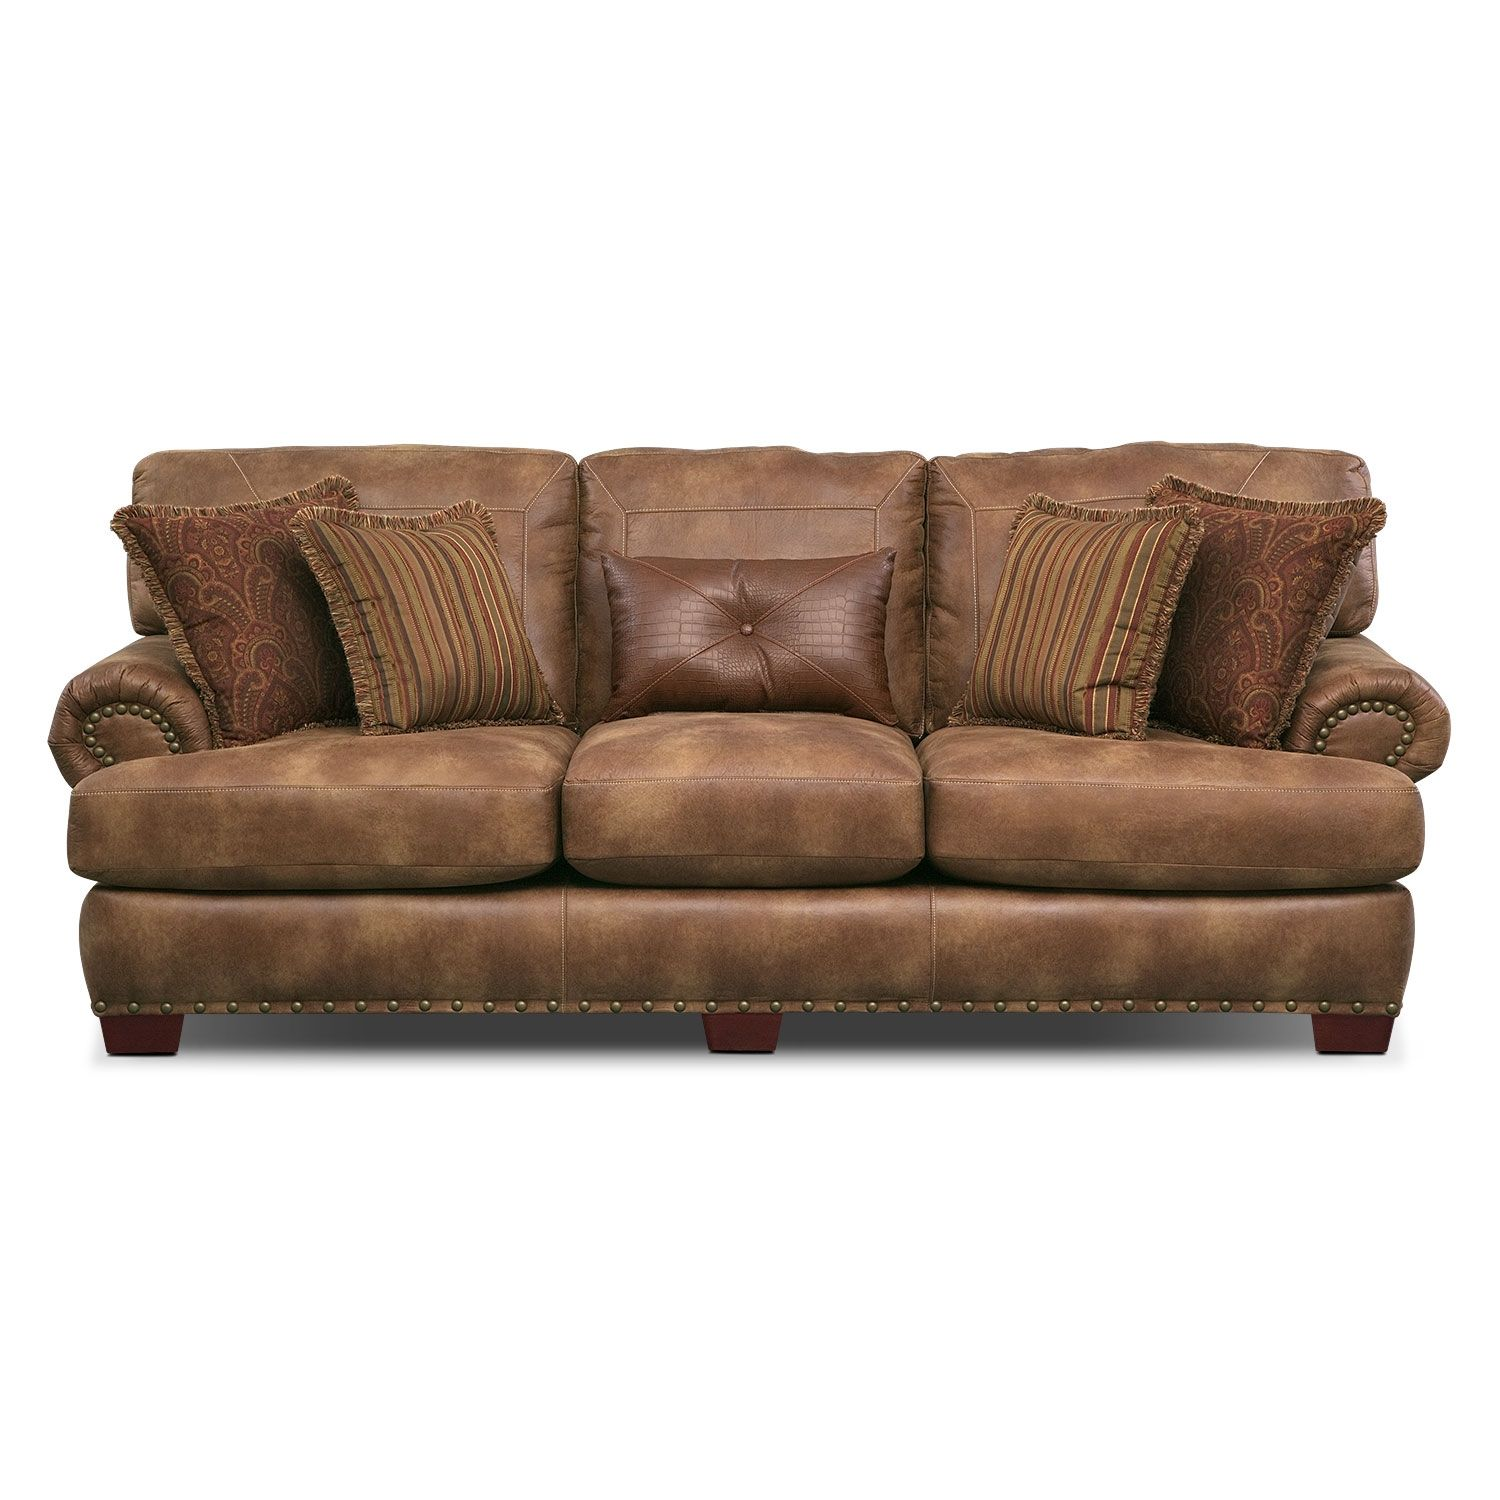 Cognac Factor Gold Burnished Nailhead Trim Along The Cognac Colored Burlington Sofa Seems Simple But It S Just T Faux Leather Sofa Western Furniture Furniture